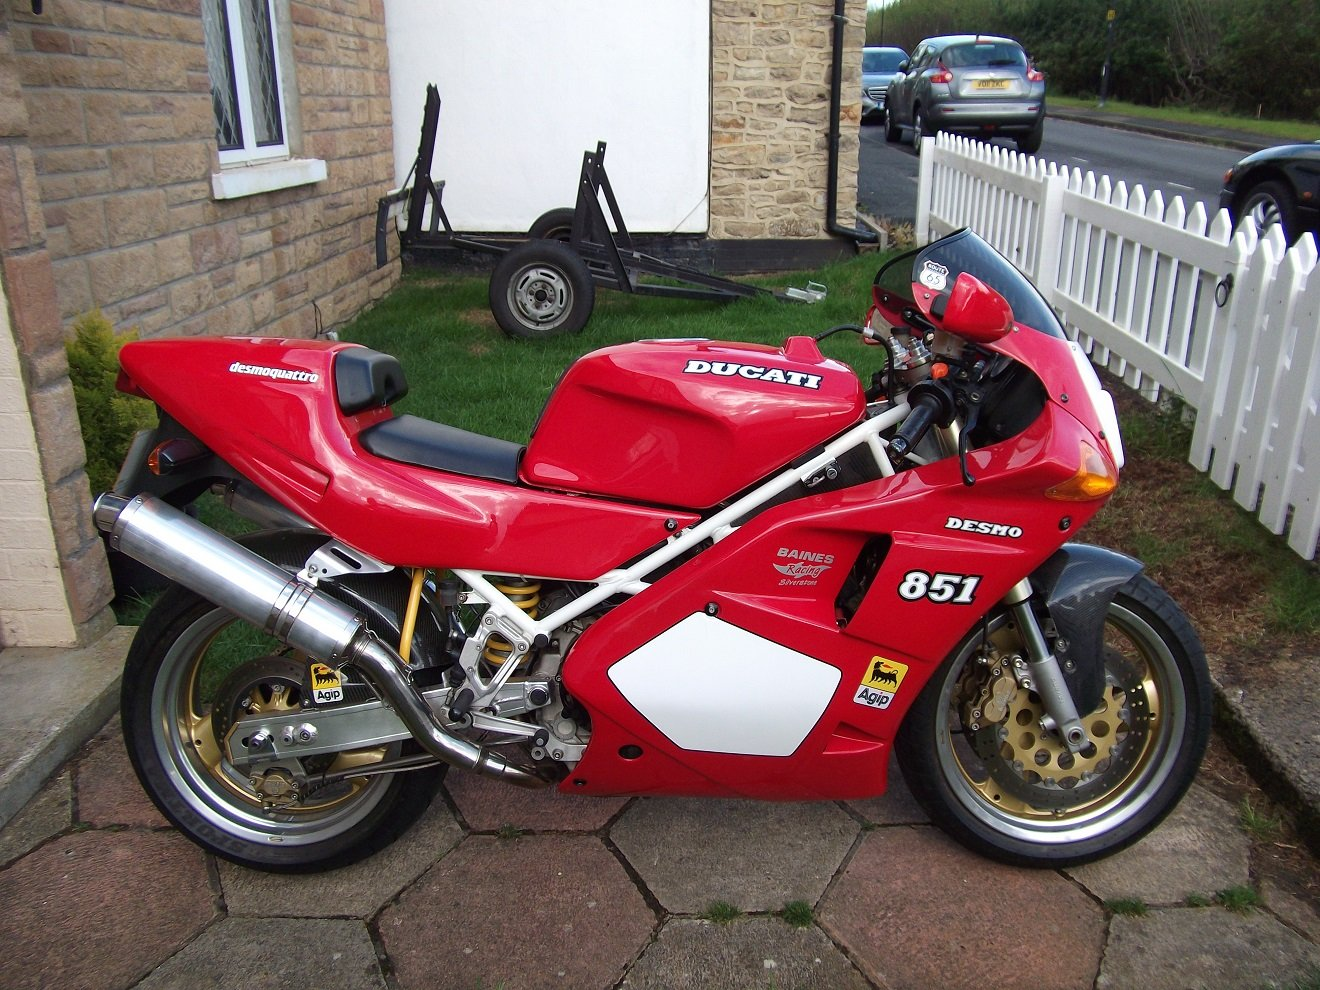 1992 Ducati 851 For Sale (picture 1 of 6)